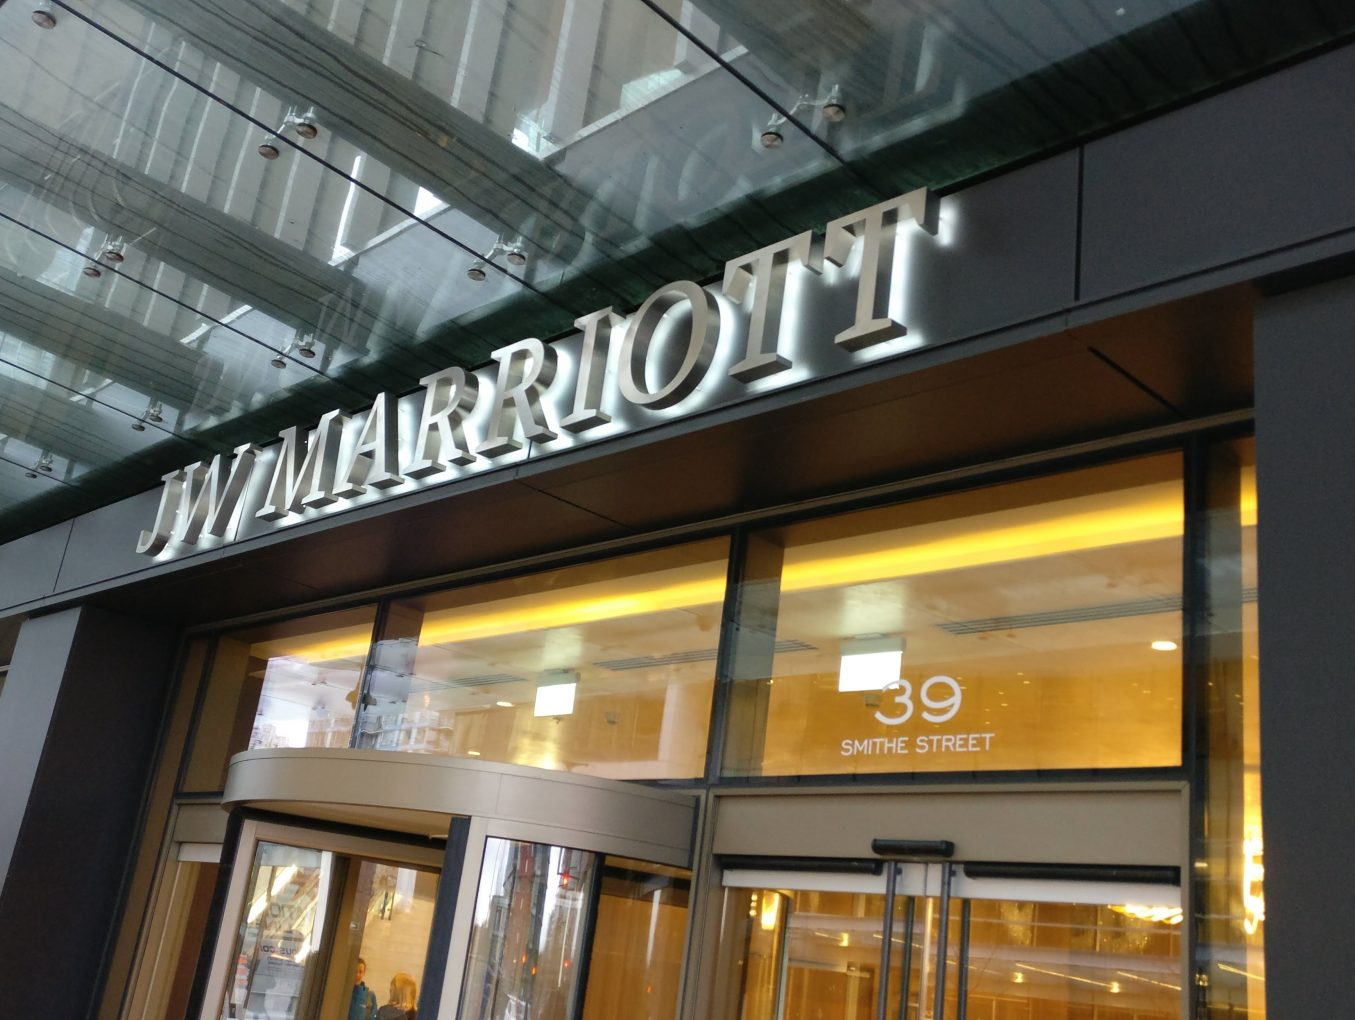 A Review of the JW Marriott Parq Hotel (Vancouver)